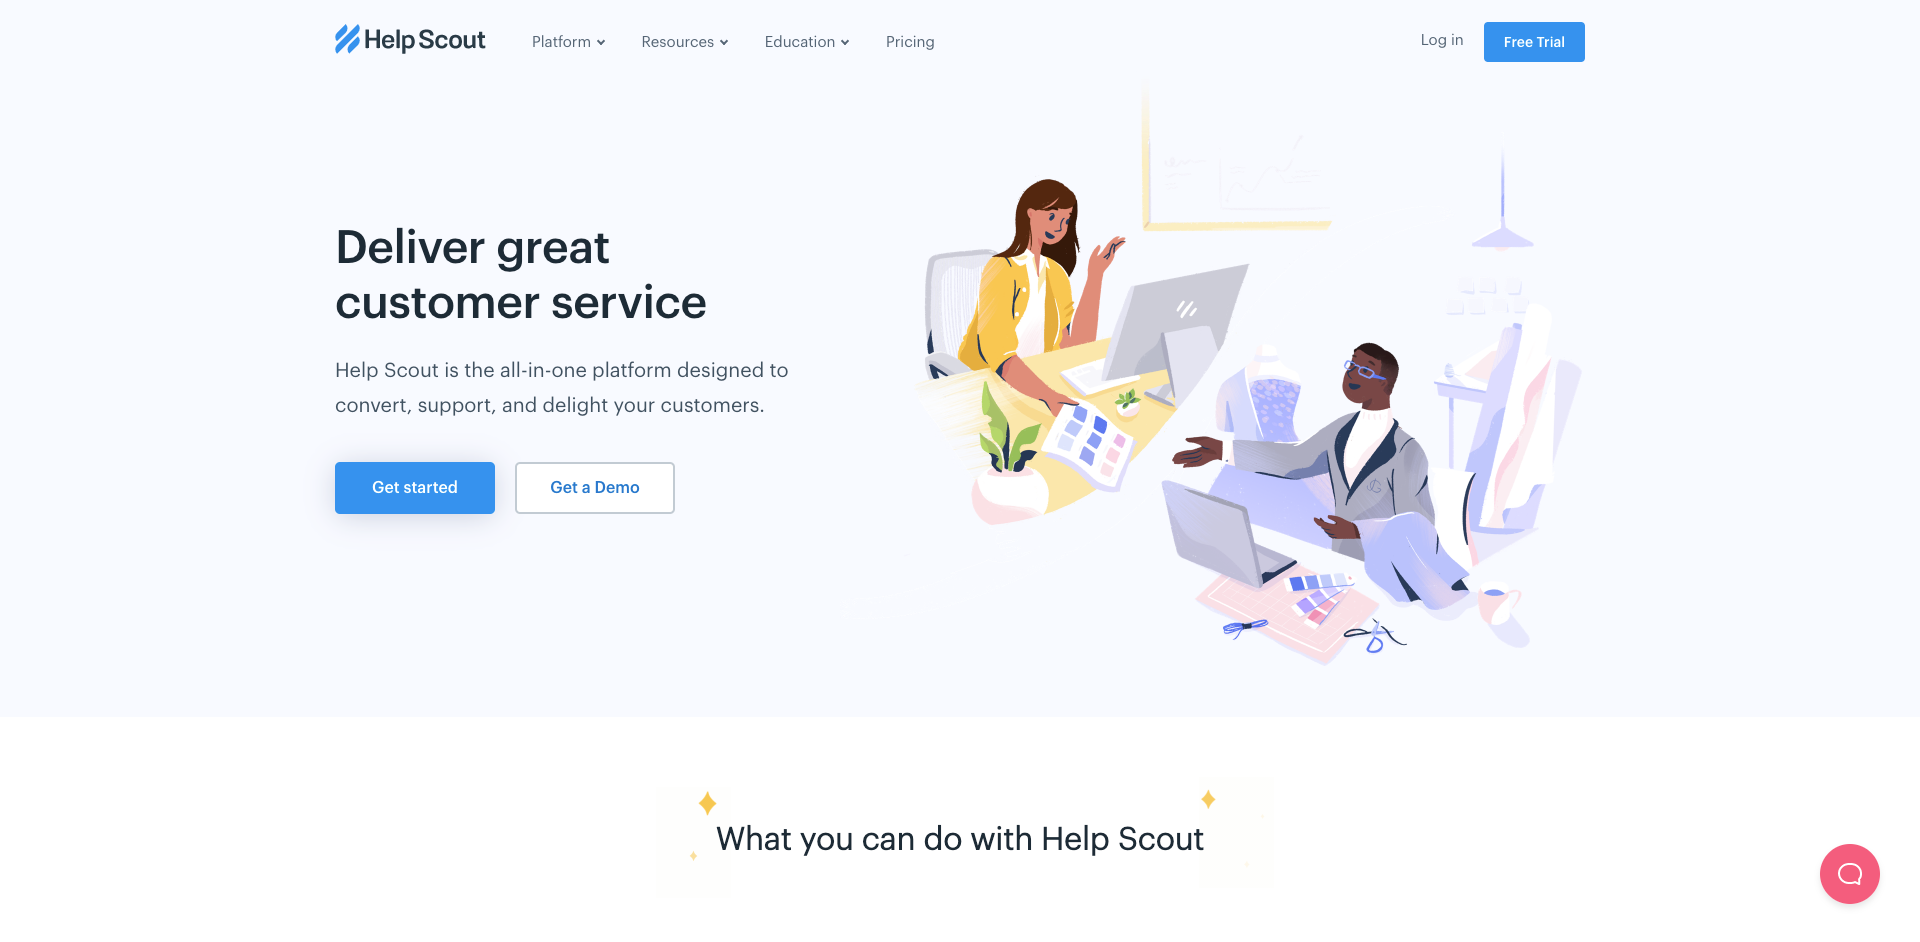 Help Scout website homepage screenshot